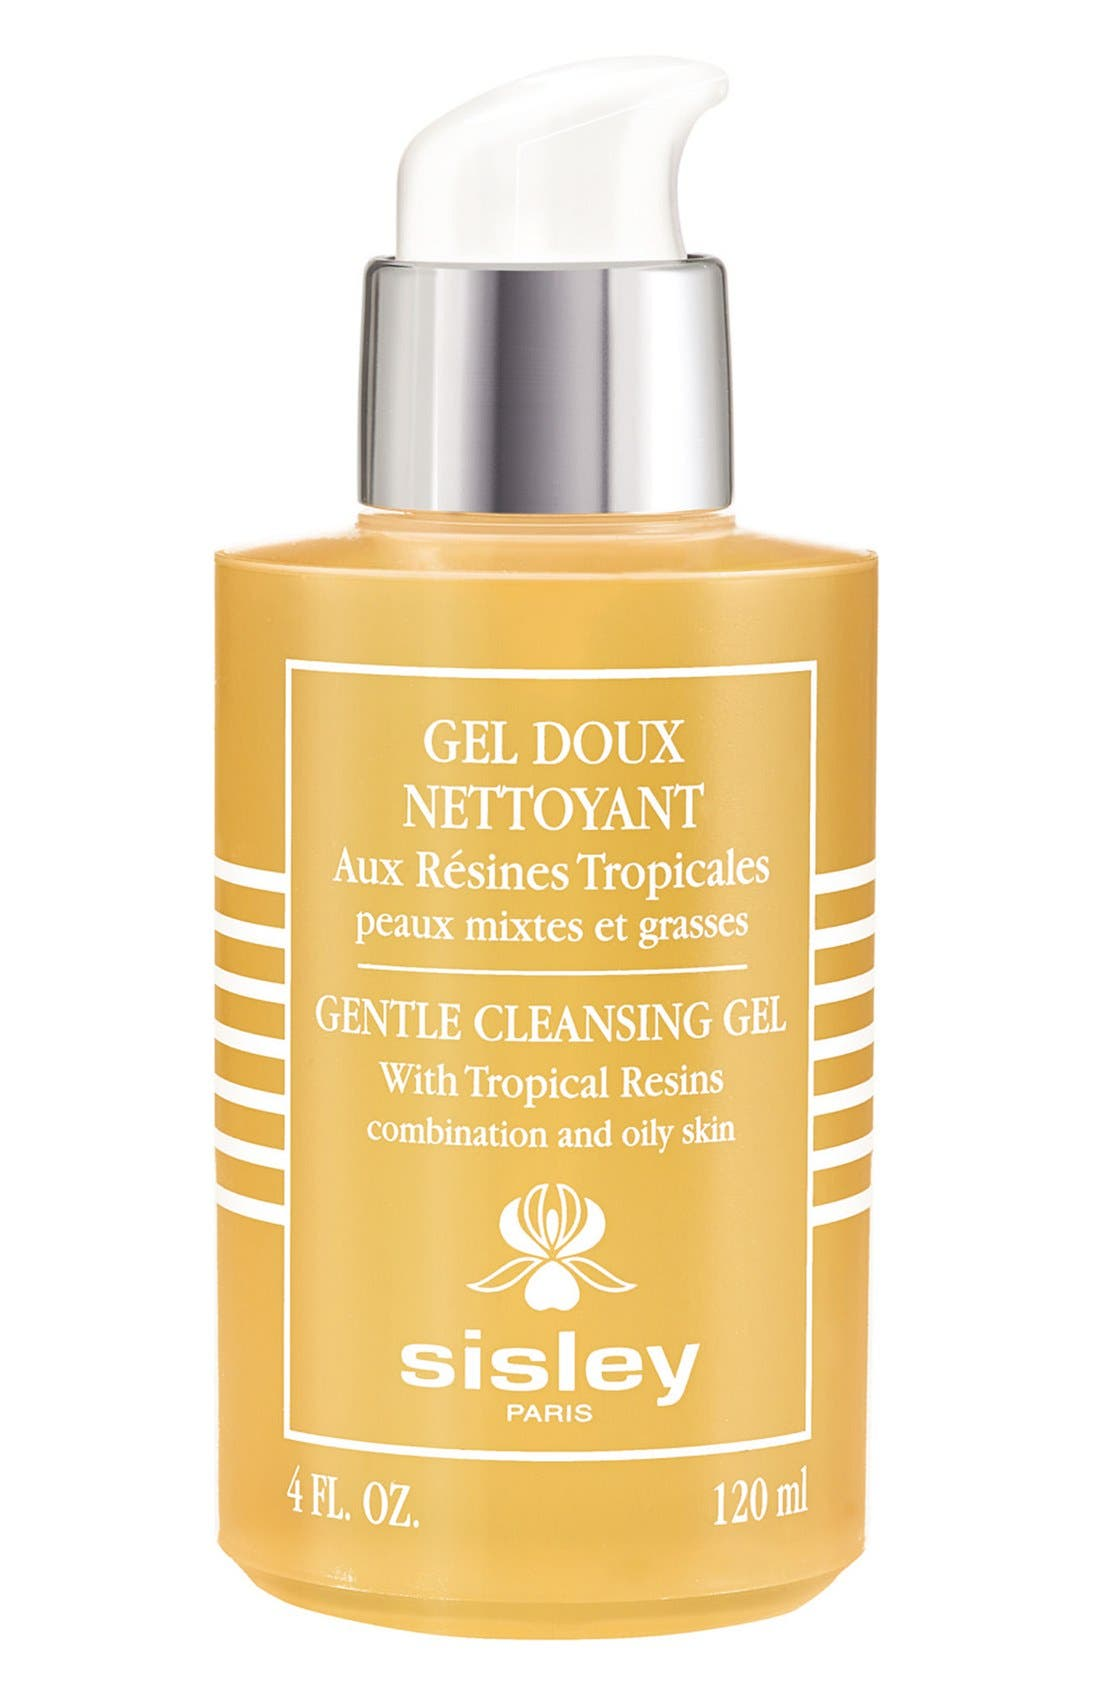 Sisley Paris Gentle Cleansing Gel with Tropical Resins